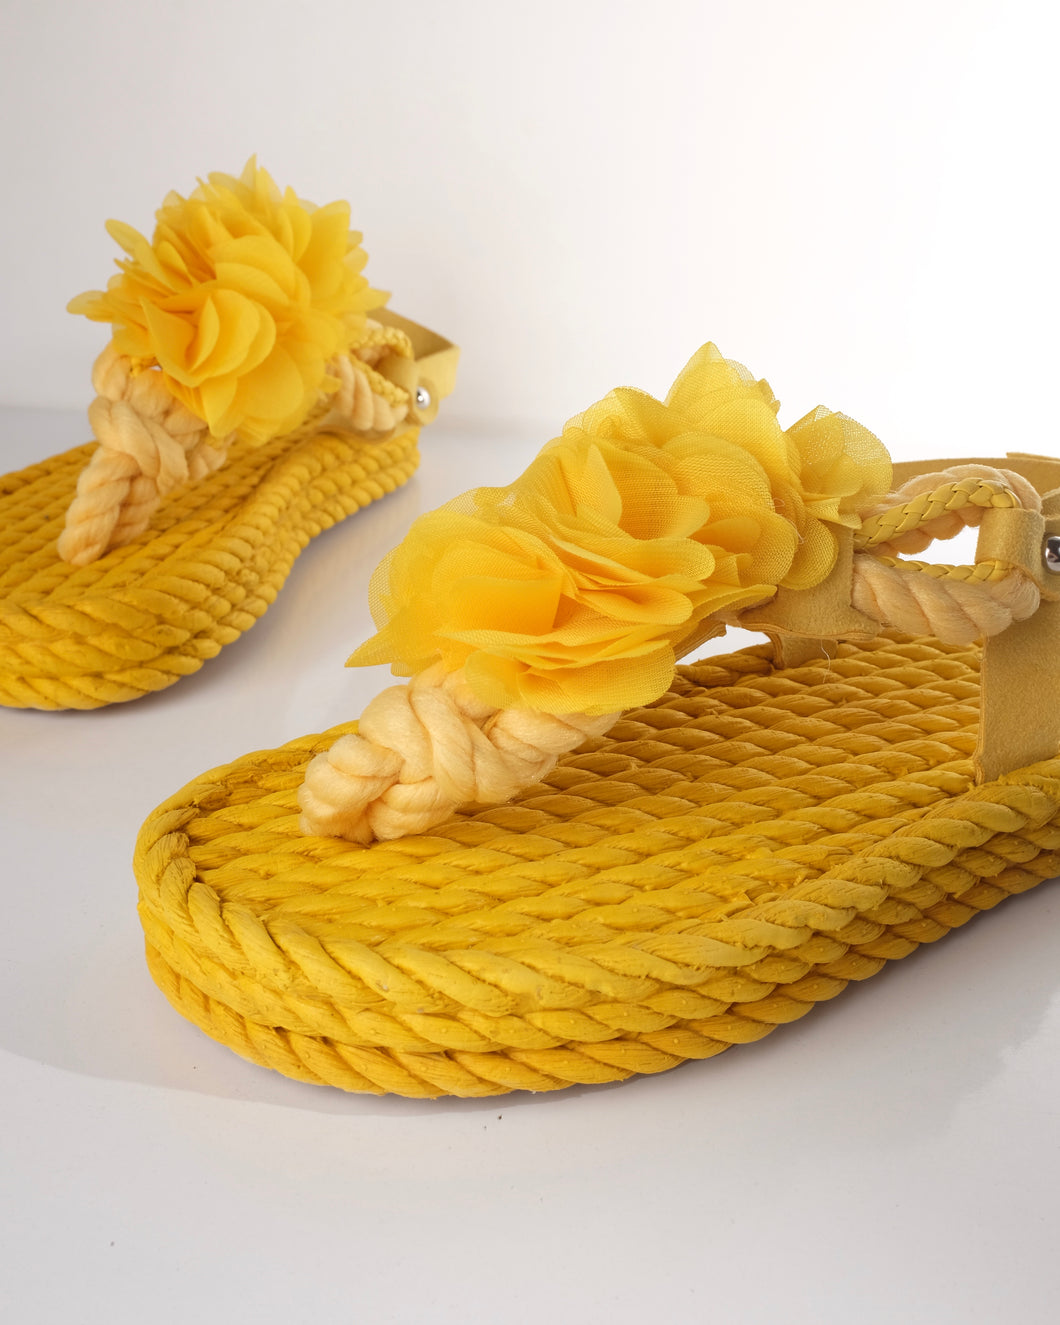 Yellow Sponge Sandals with Flowers